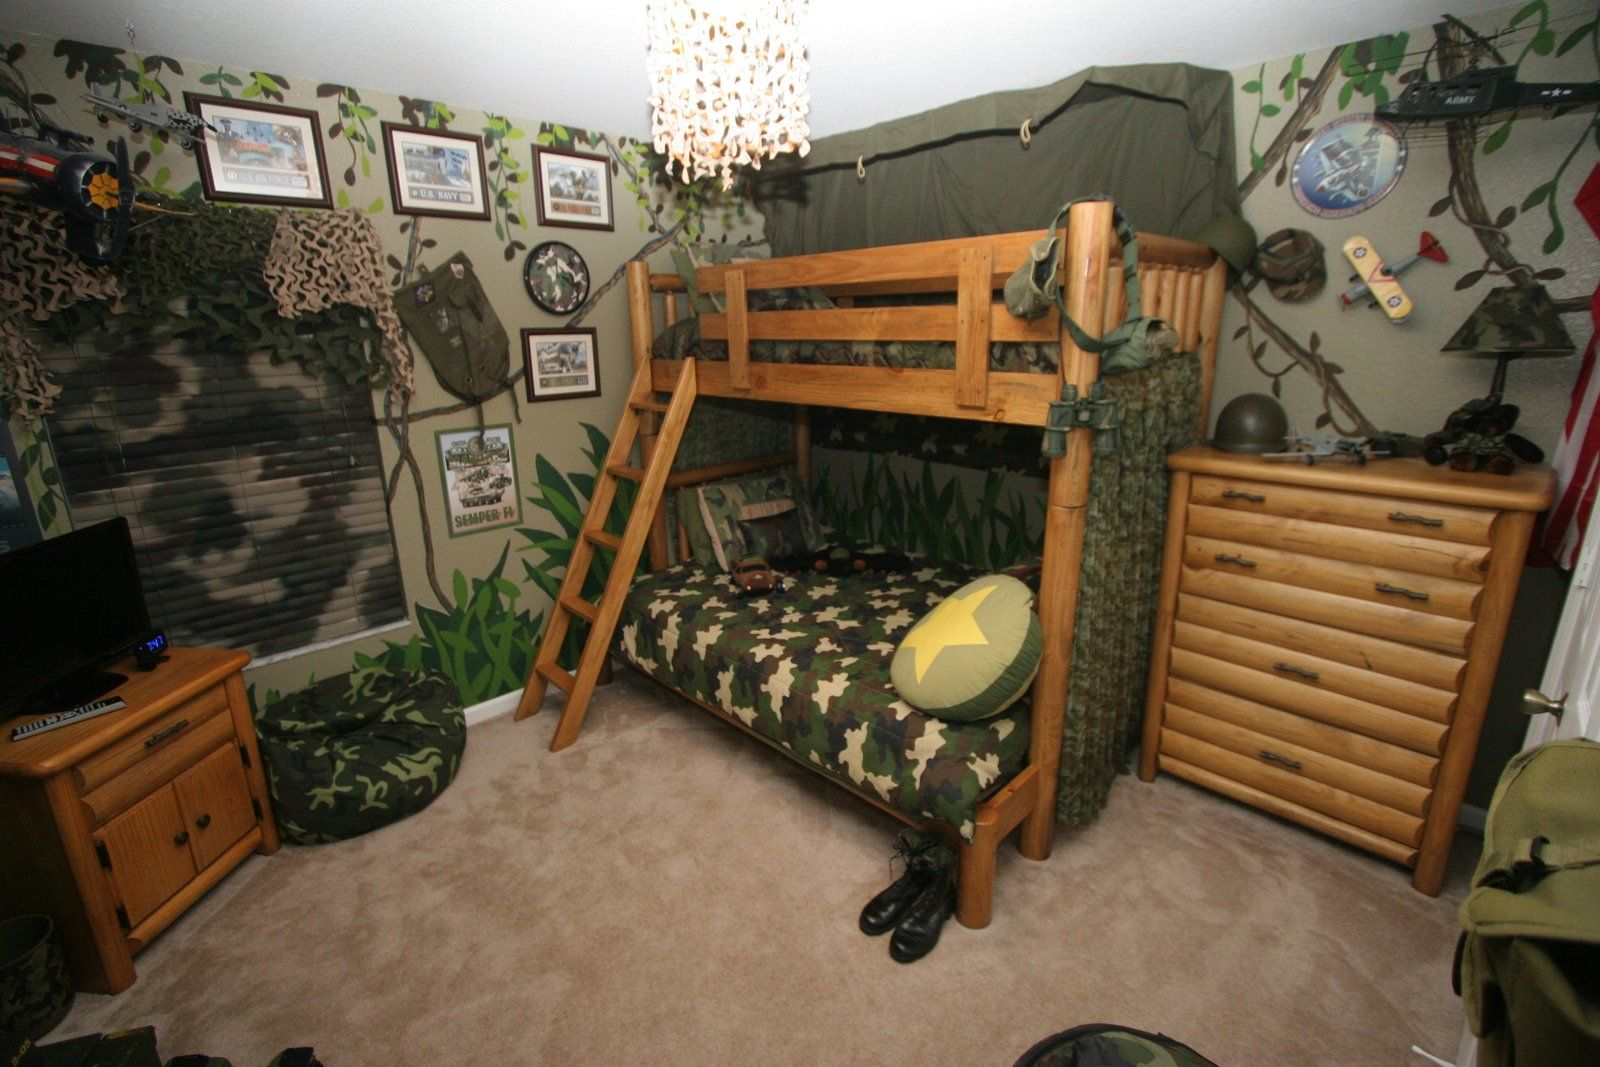 Image Detail For Bed Patriotic Boys Room Camouflage Army Fatigue Decor Boys Cool Bedrooms For Boys Boy Bedroom Design Little Boy Bedroom Ideas